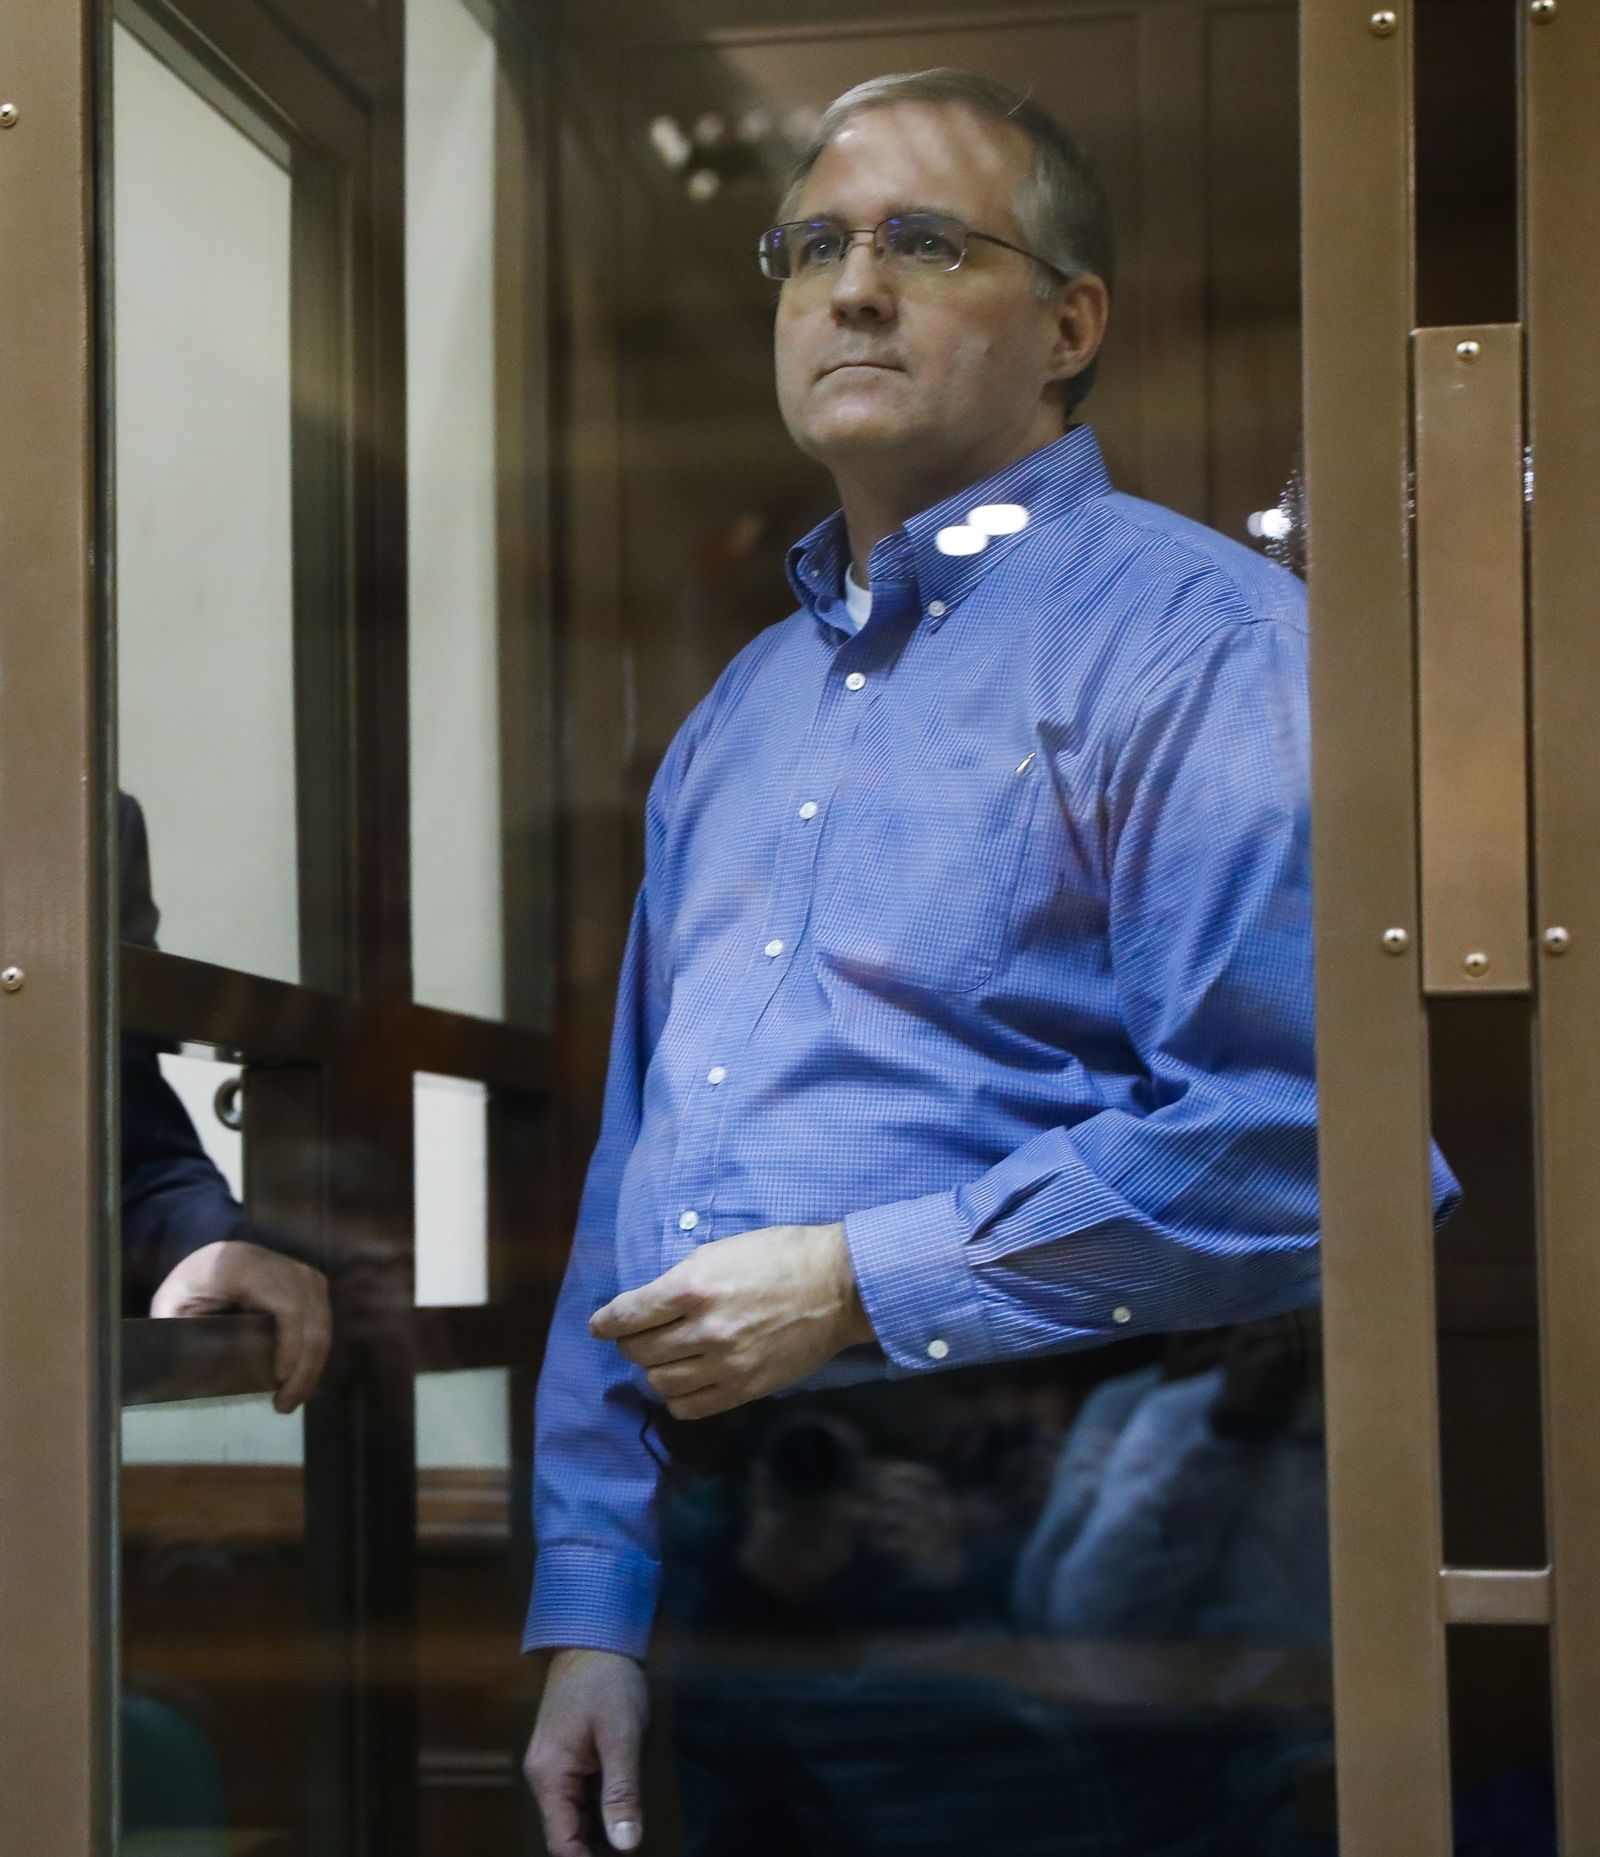 Paul Whelan, a former U.S. Marine, who was arrested in Moscow at the end of last year looks through a cage's glass in a court room in Moscow, Russia, Tuesday, Jan. 22, 2019. (AP Photo/Pavel Golovkin)